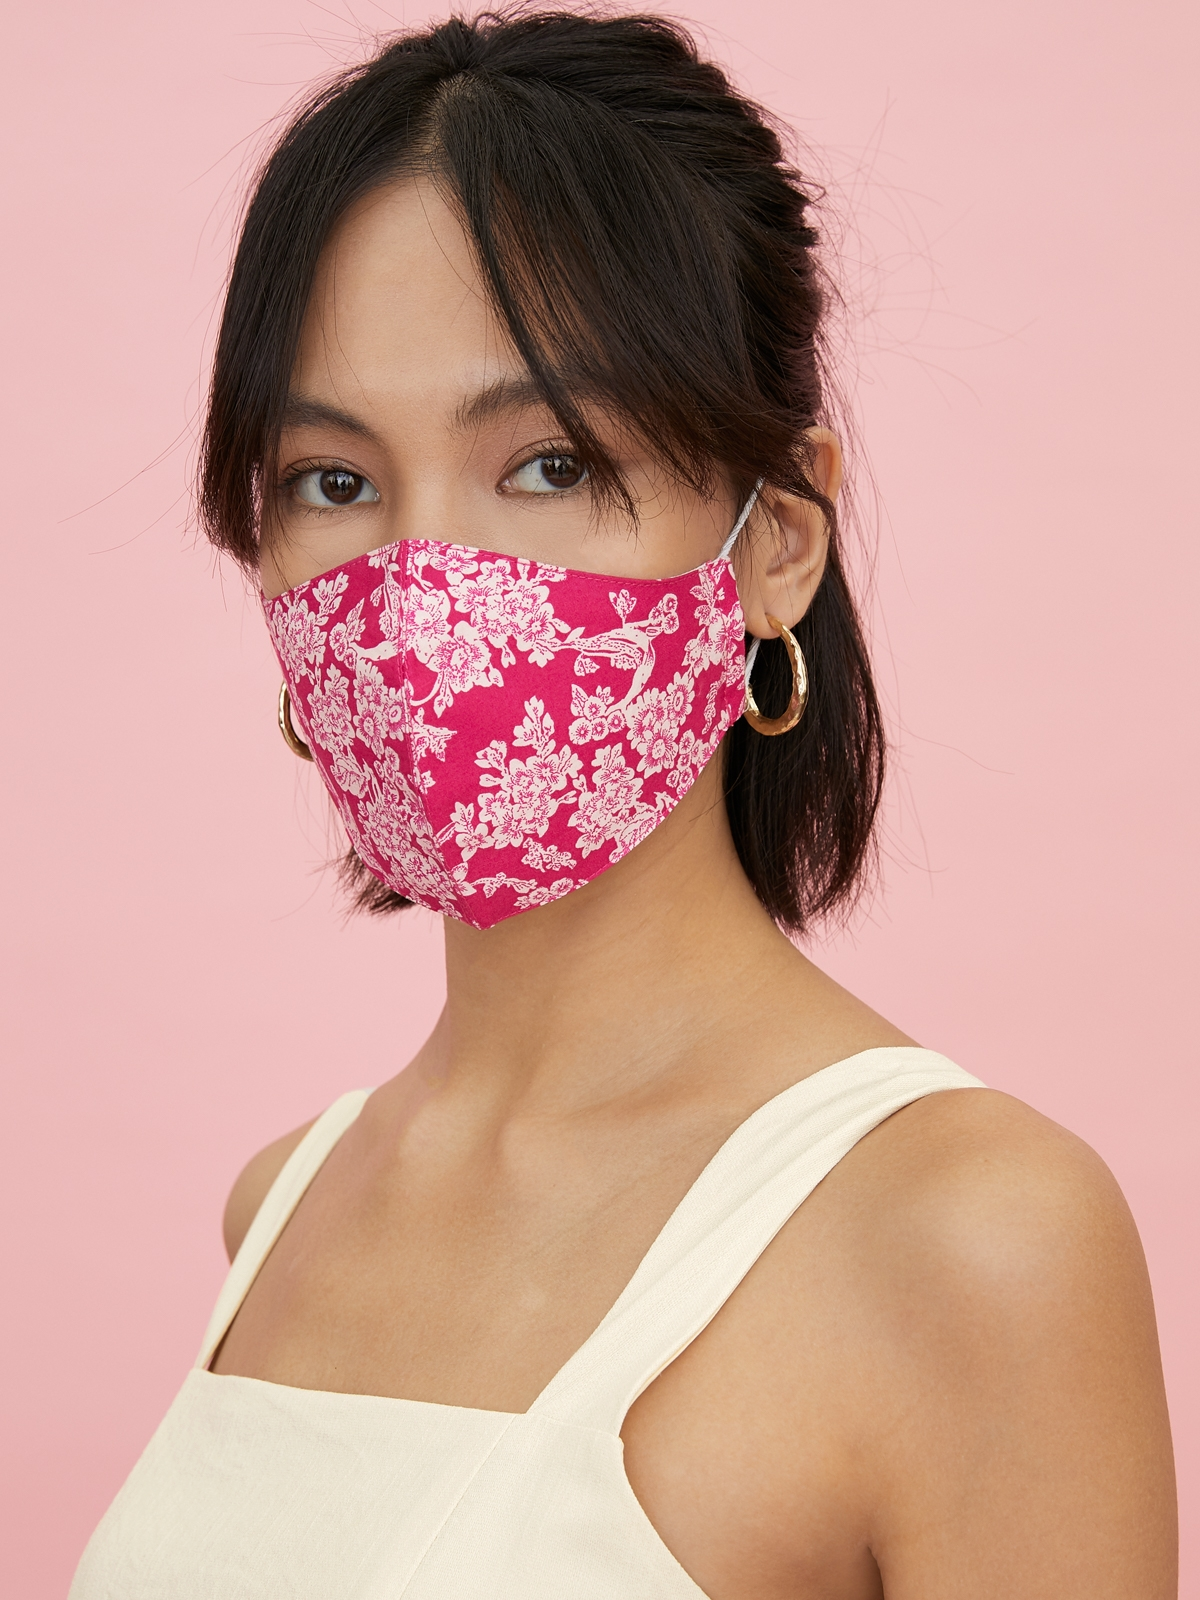 People Triple Defense Layer Reusable Mask Hot Pink